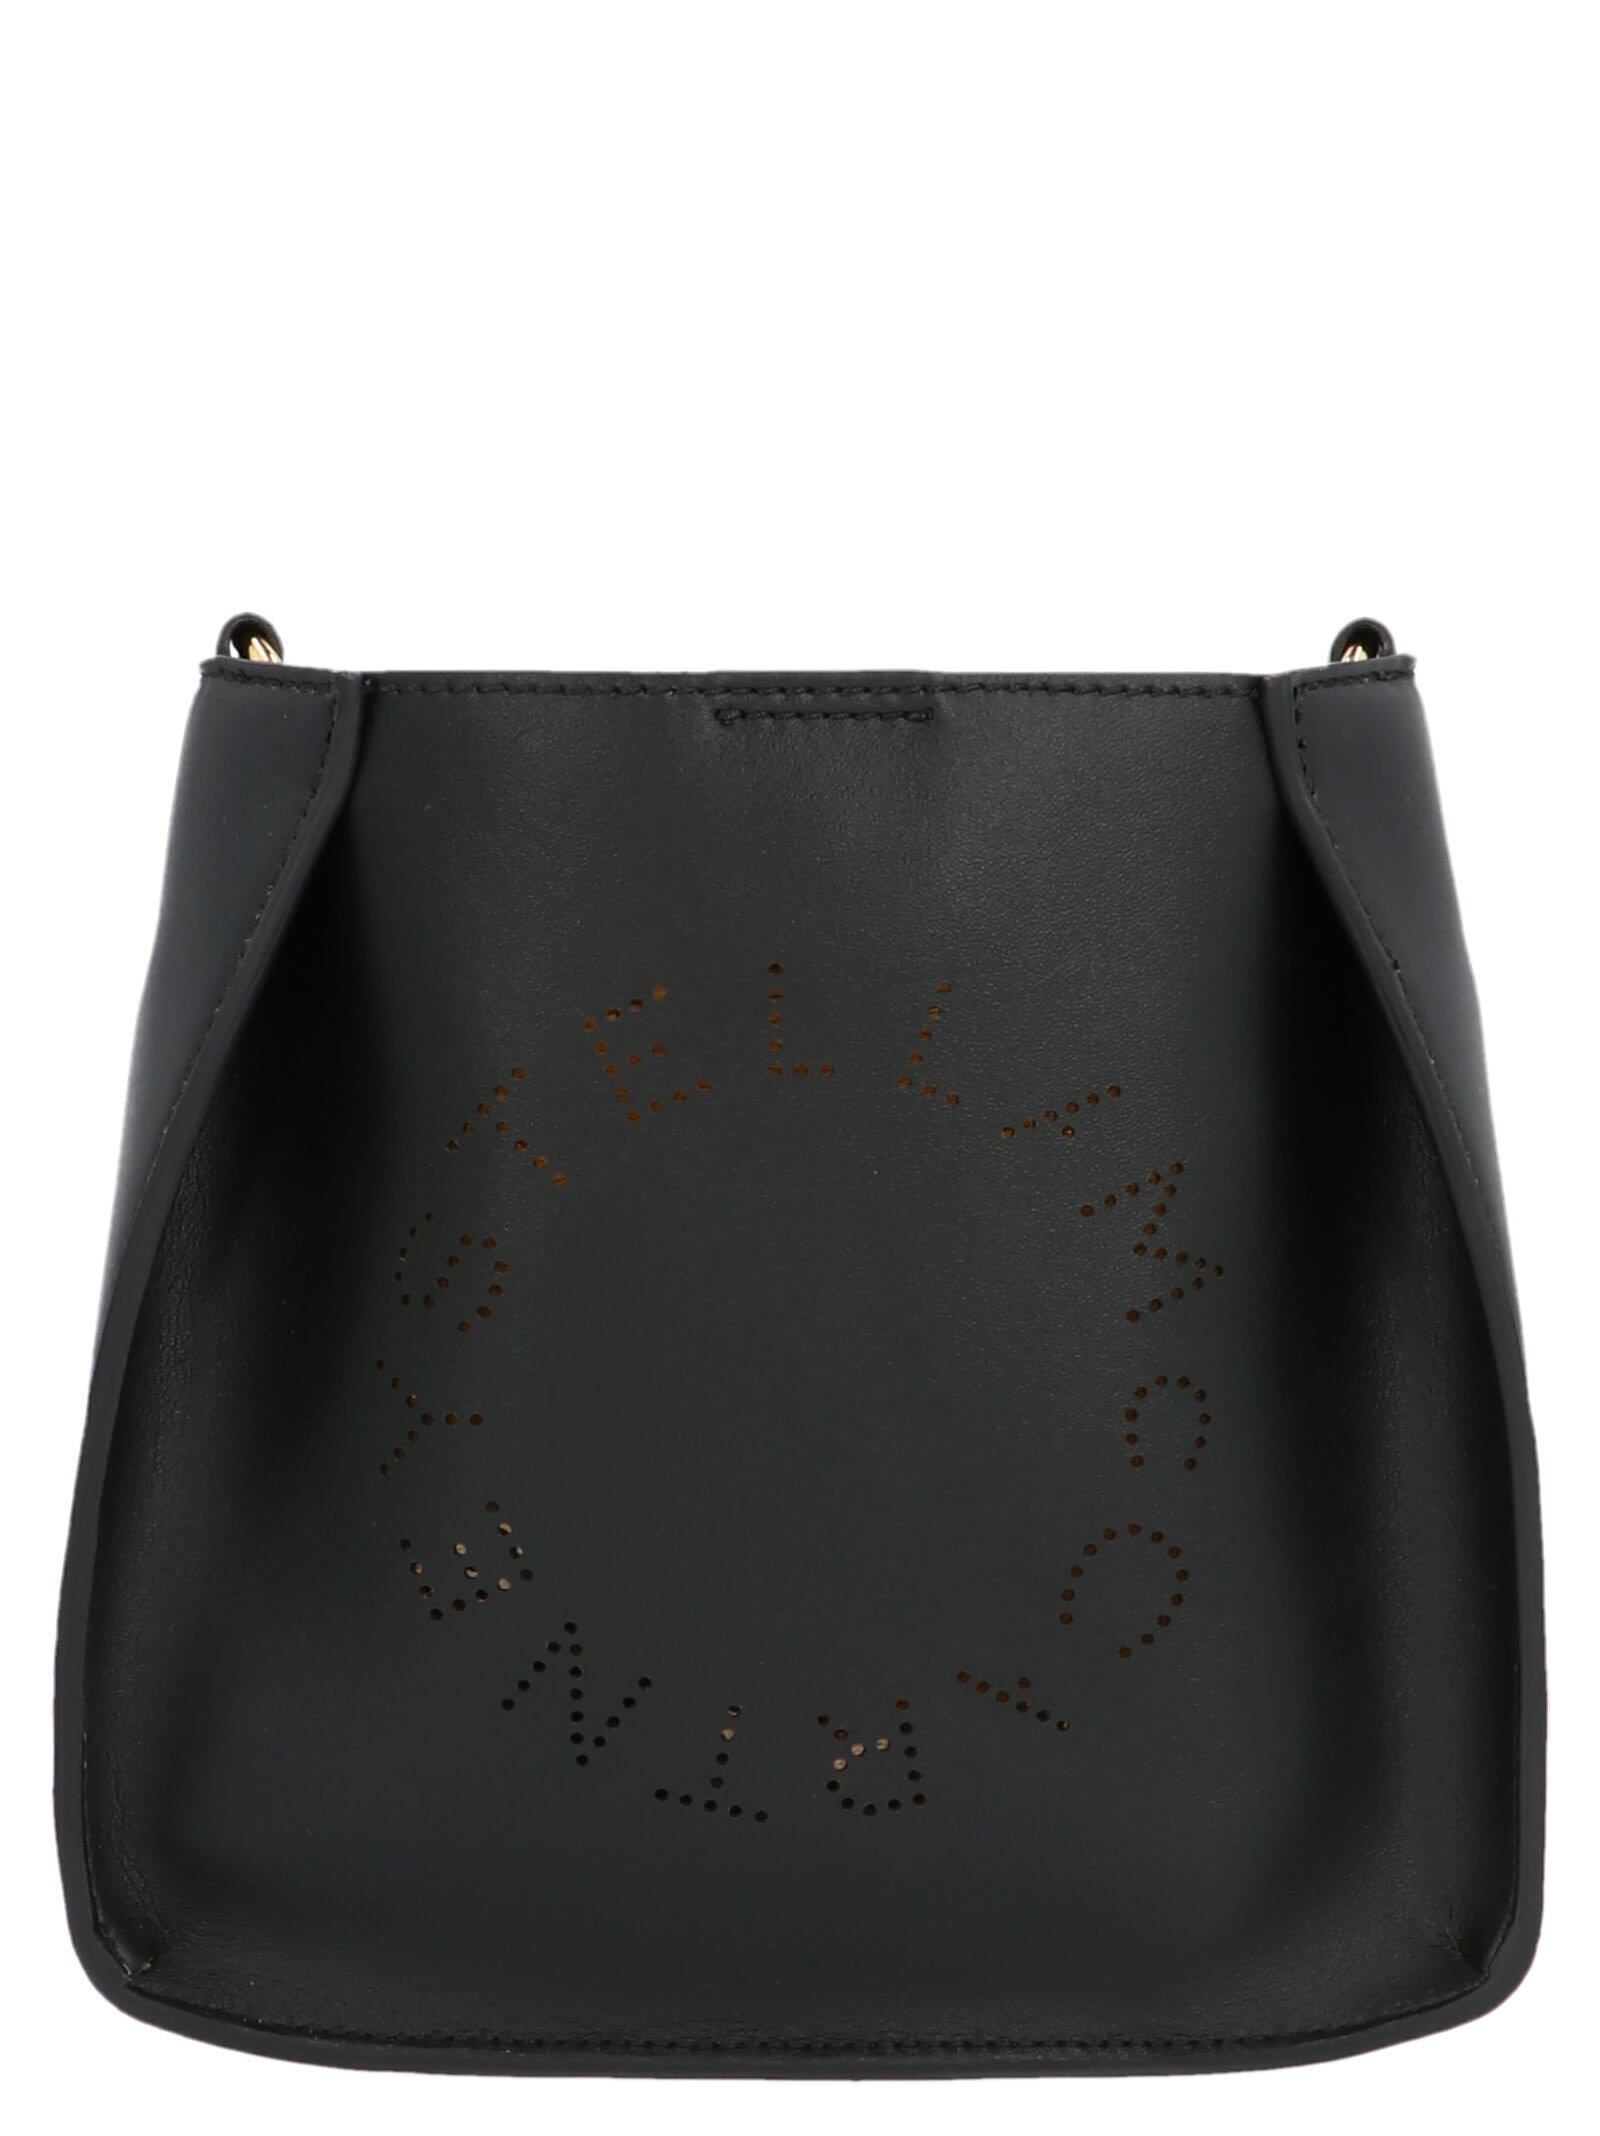 Stella McCartney Stella Mccartney La Logo Mini Bag